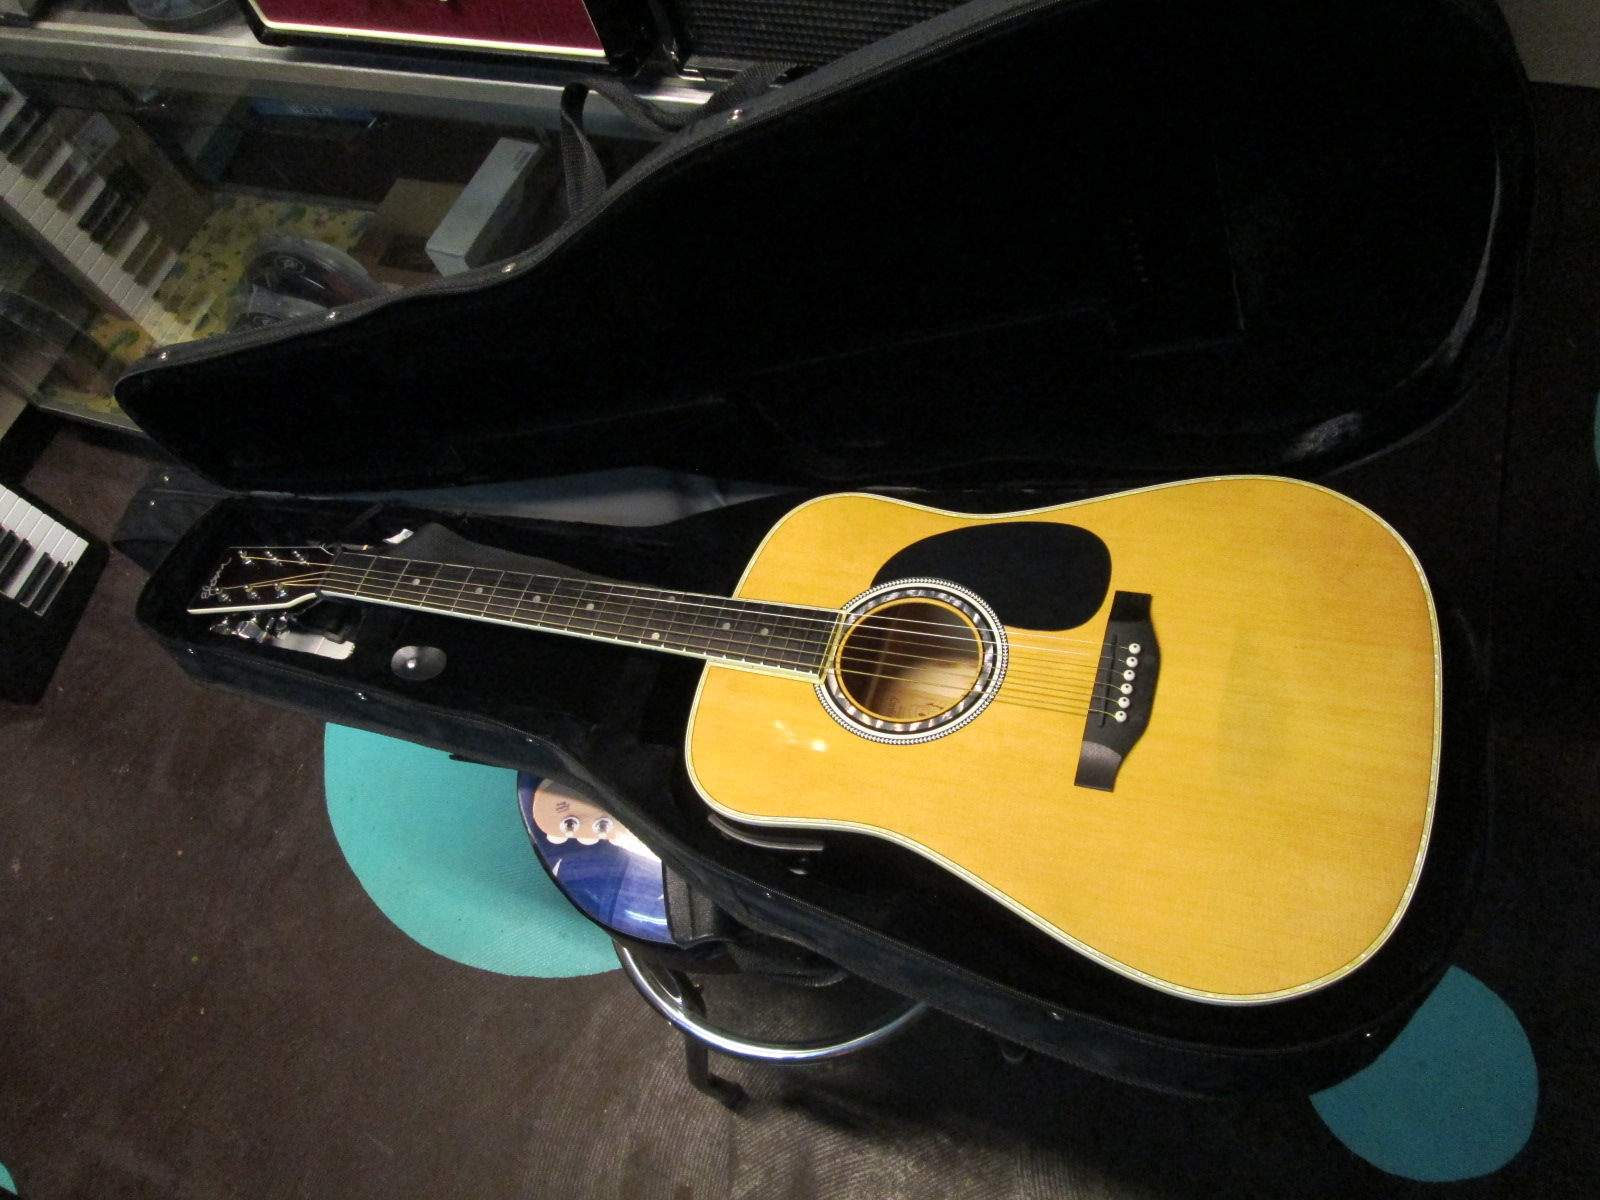 b0660645425 ESTEBAN Acoustic Electric Guitar American Legacy Natural ALC-200 like new  with case $99.00 ( pic1 +2 ) e/r-x • ESTEBAN Acoustic Electric Guitar  American ...